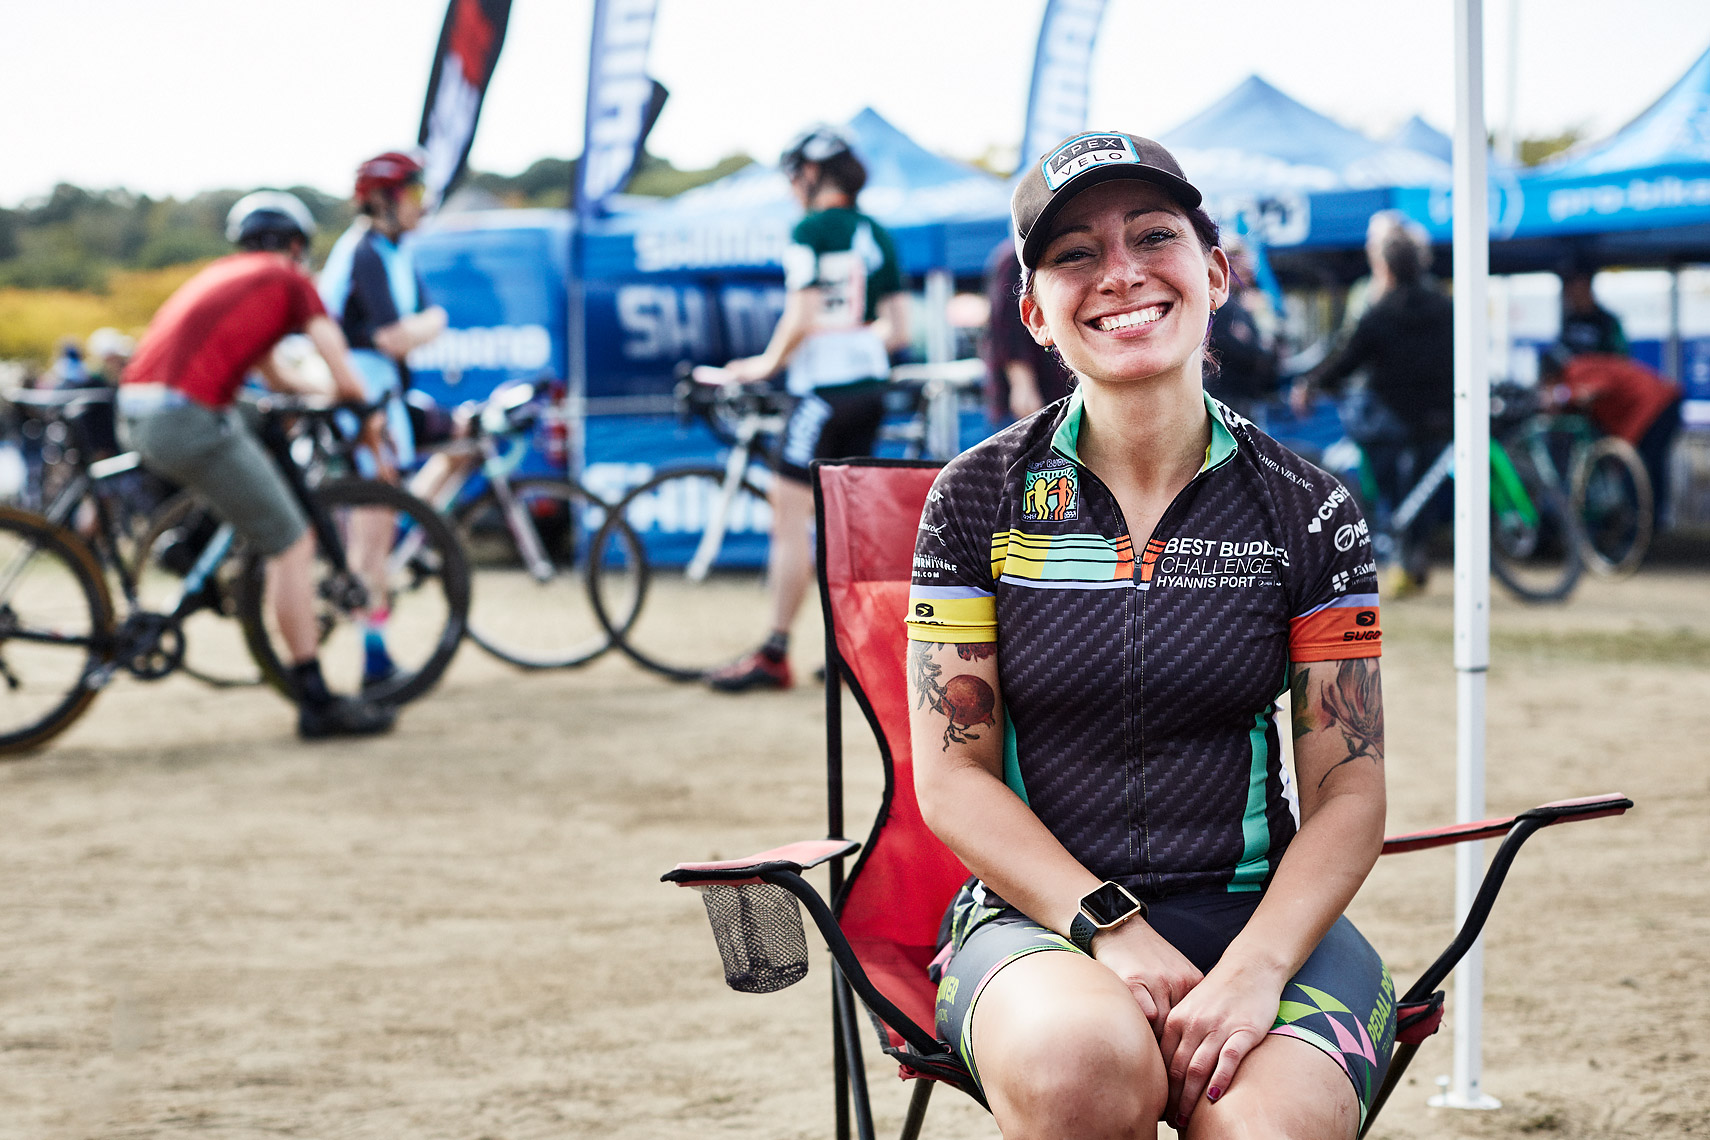 Sara Melikian, of Wilbraham, Mass., finished 35th in the Women's UCI Cat2 race on Sunday — and had a blast doing it.(Photograph by Jonathan Kozowyk)